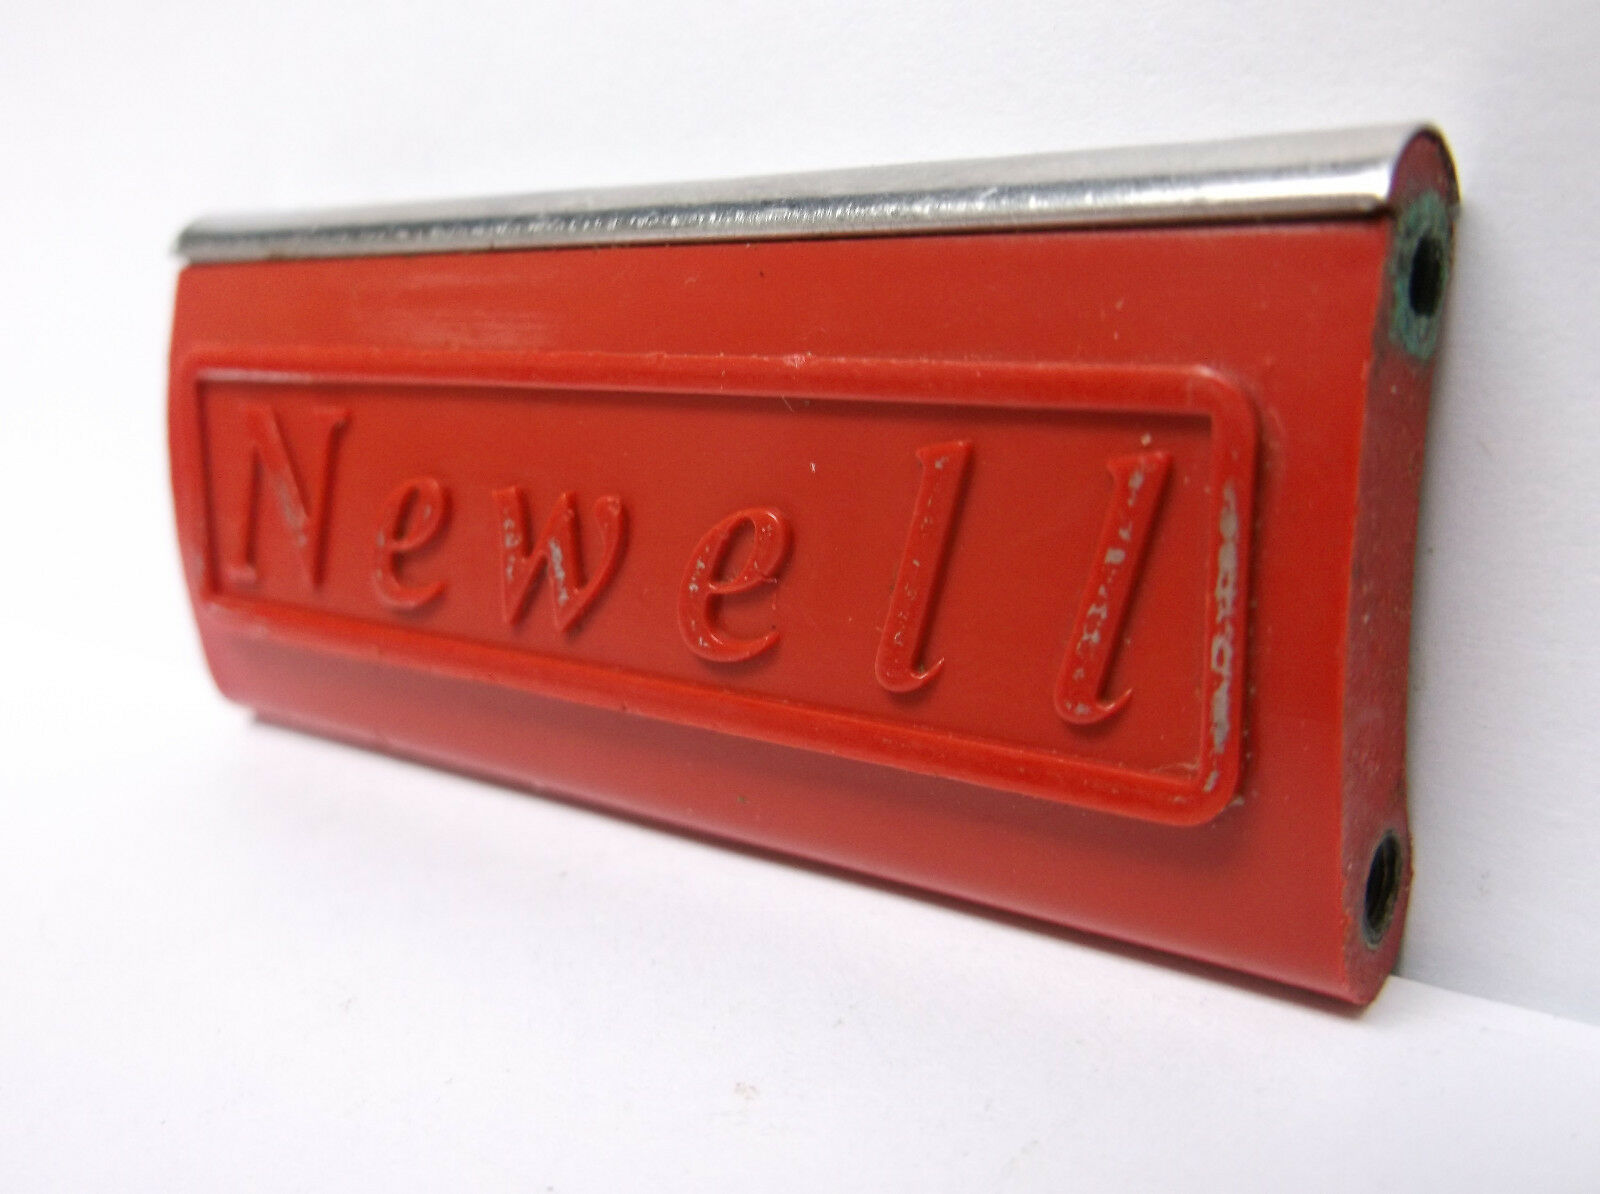 USED NEWELL CONVENTIONAL REEL PART - R 533 5.5 ROT - Spacer Bar  B